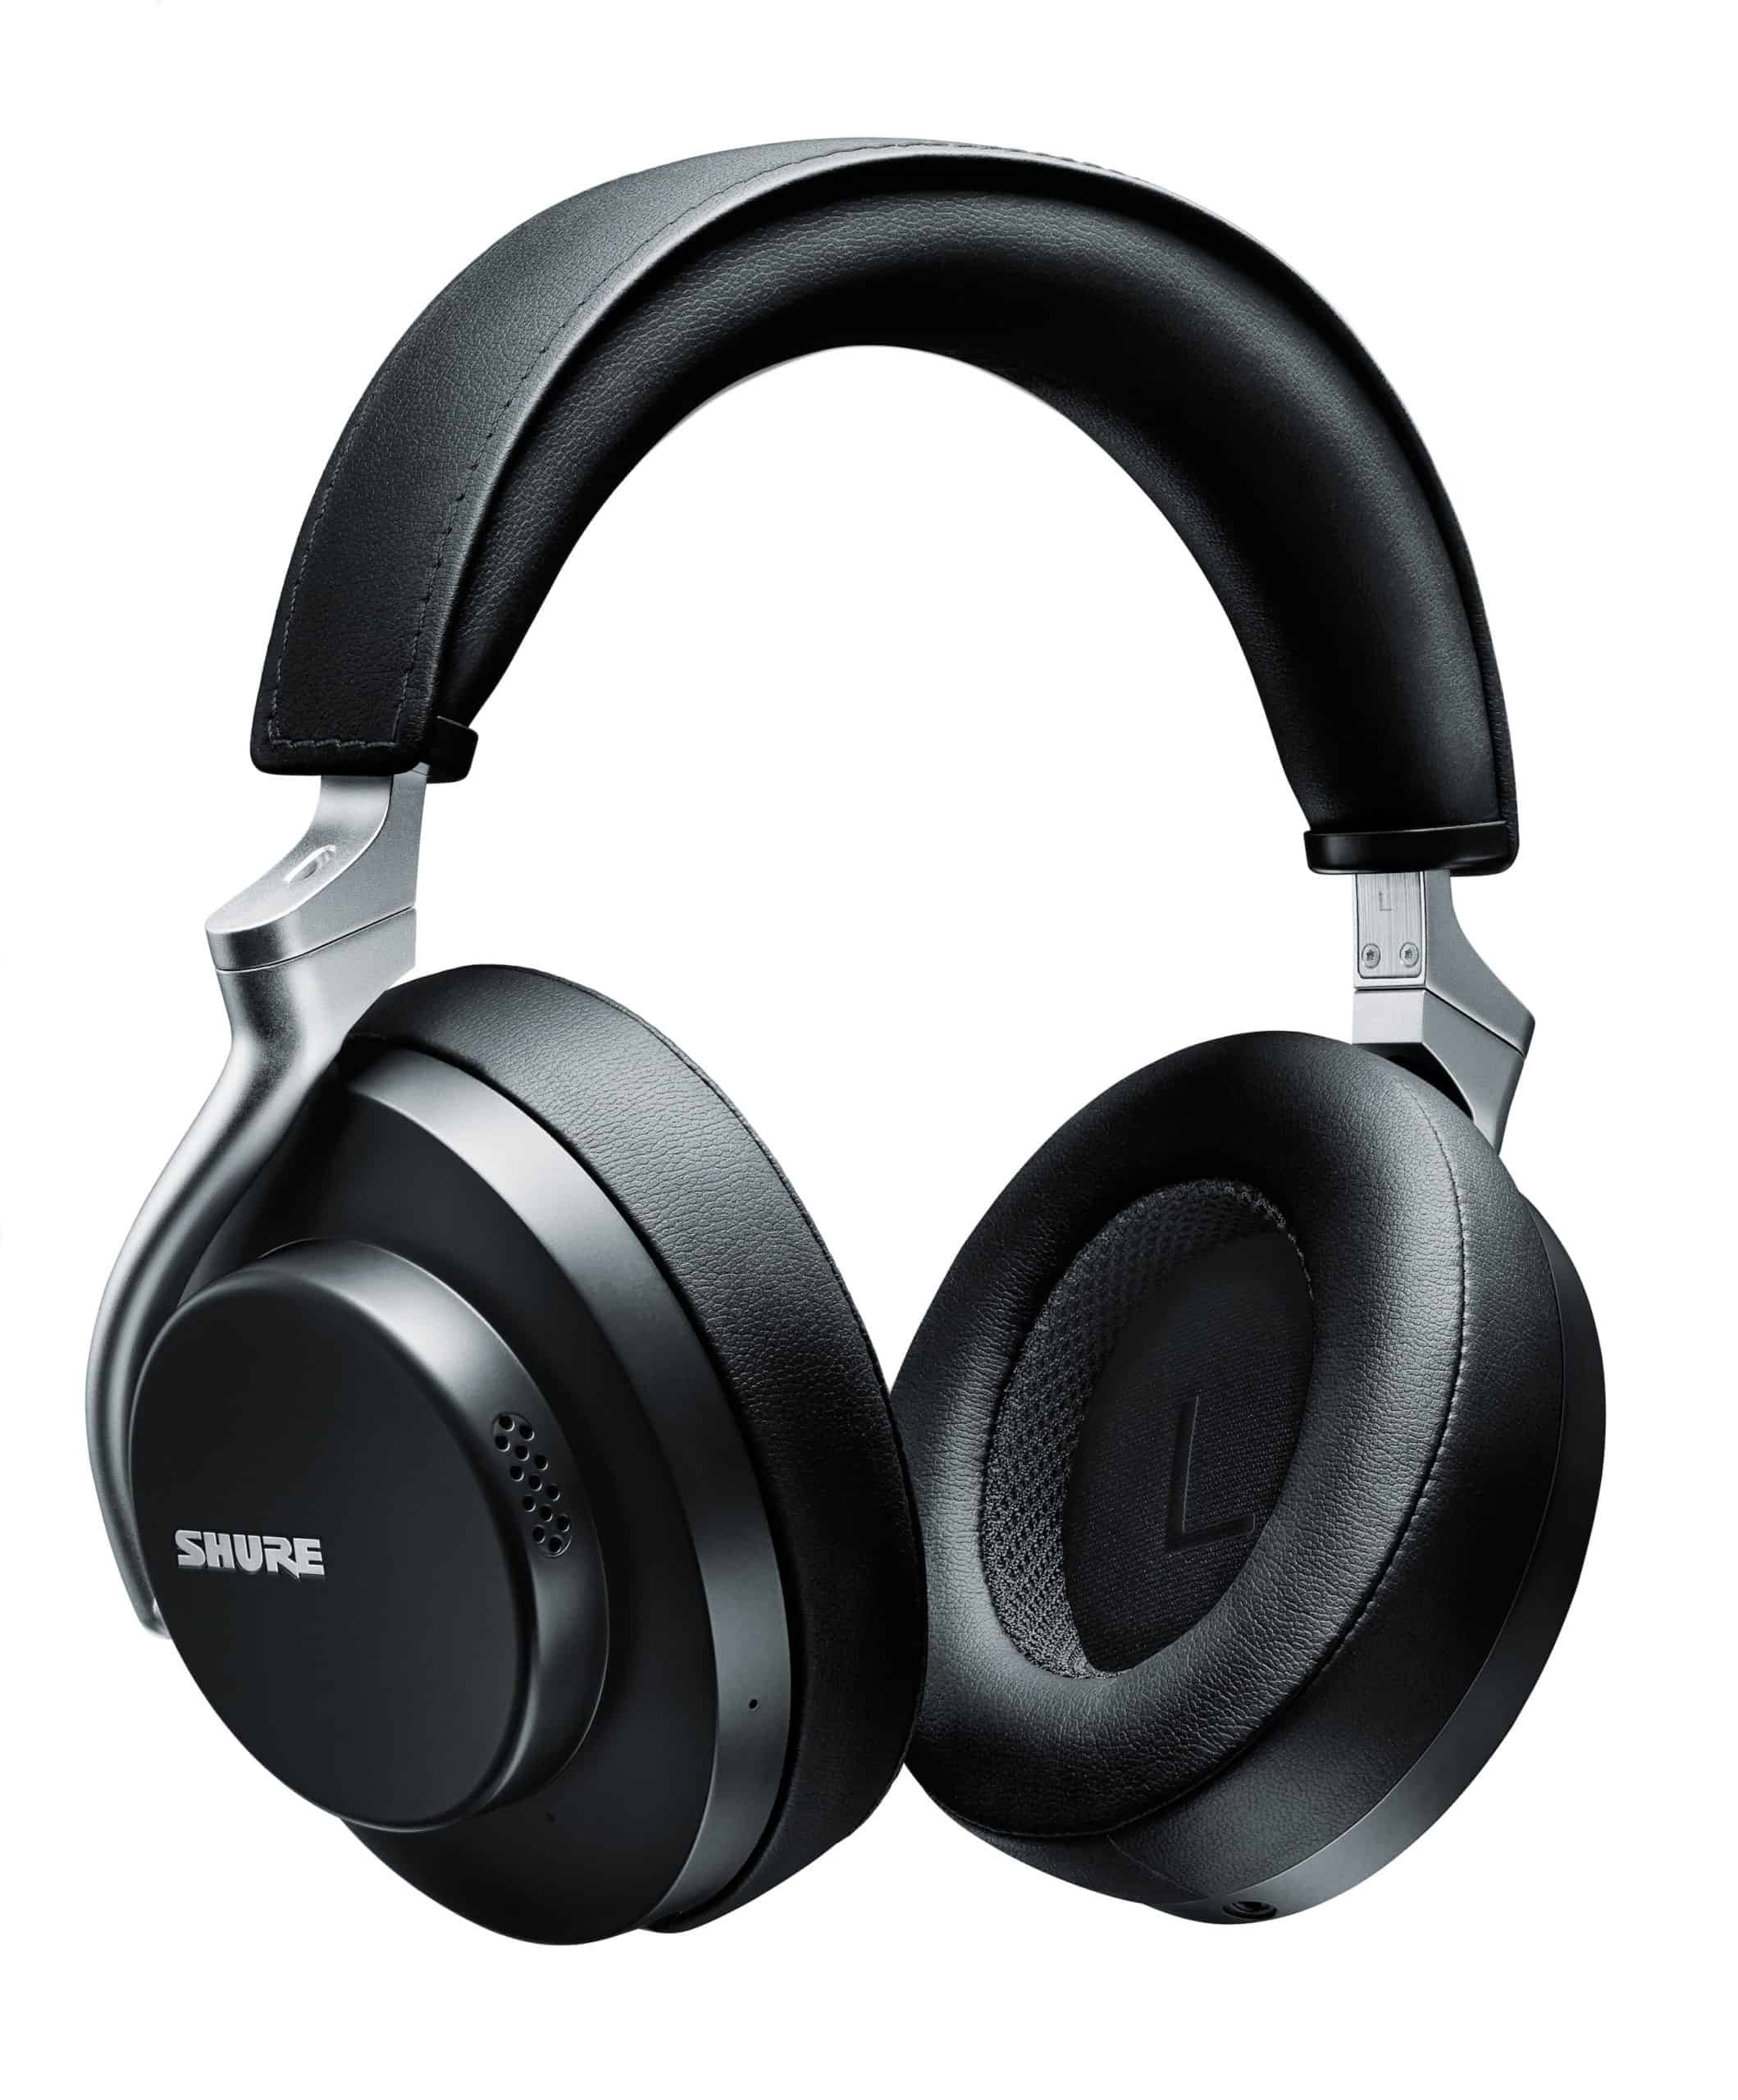 Shure debuts their new Aonic headphones with noise cancellation, in the UAE